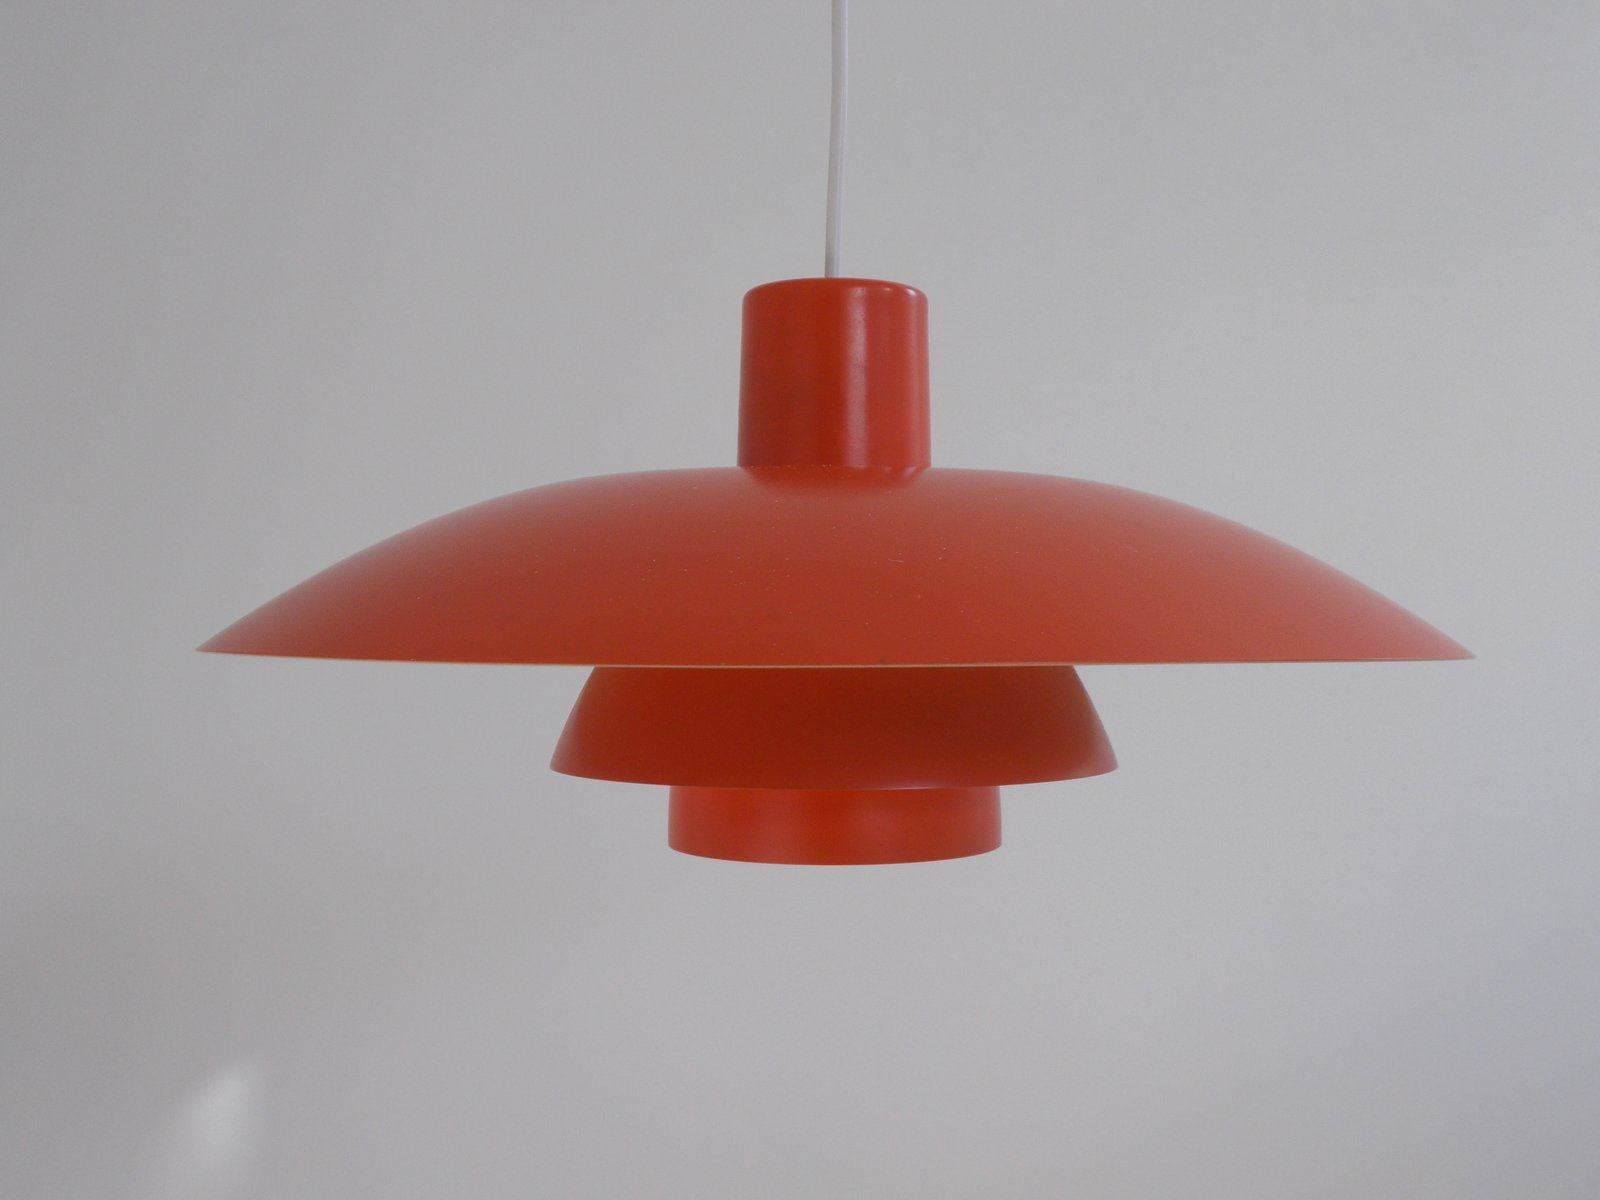 Danish Red PH 3-4 Pendant Light by Poul Henningsen for Louis Poulsen 1950s & Danish Red PH 3-4 Pendant Light by Poul Henningsen for Louis ... azcodes.com